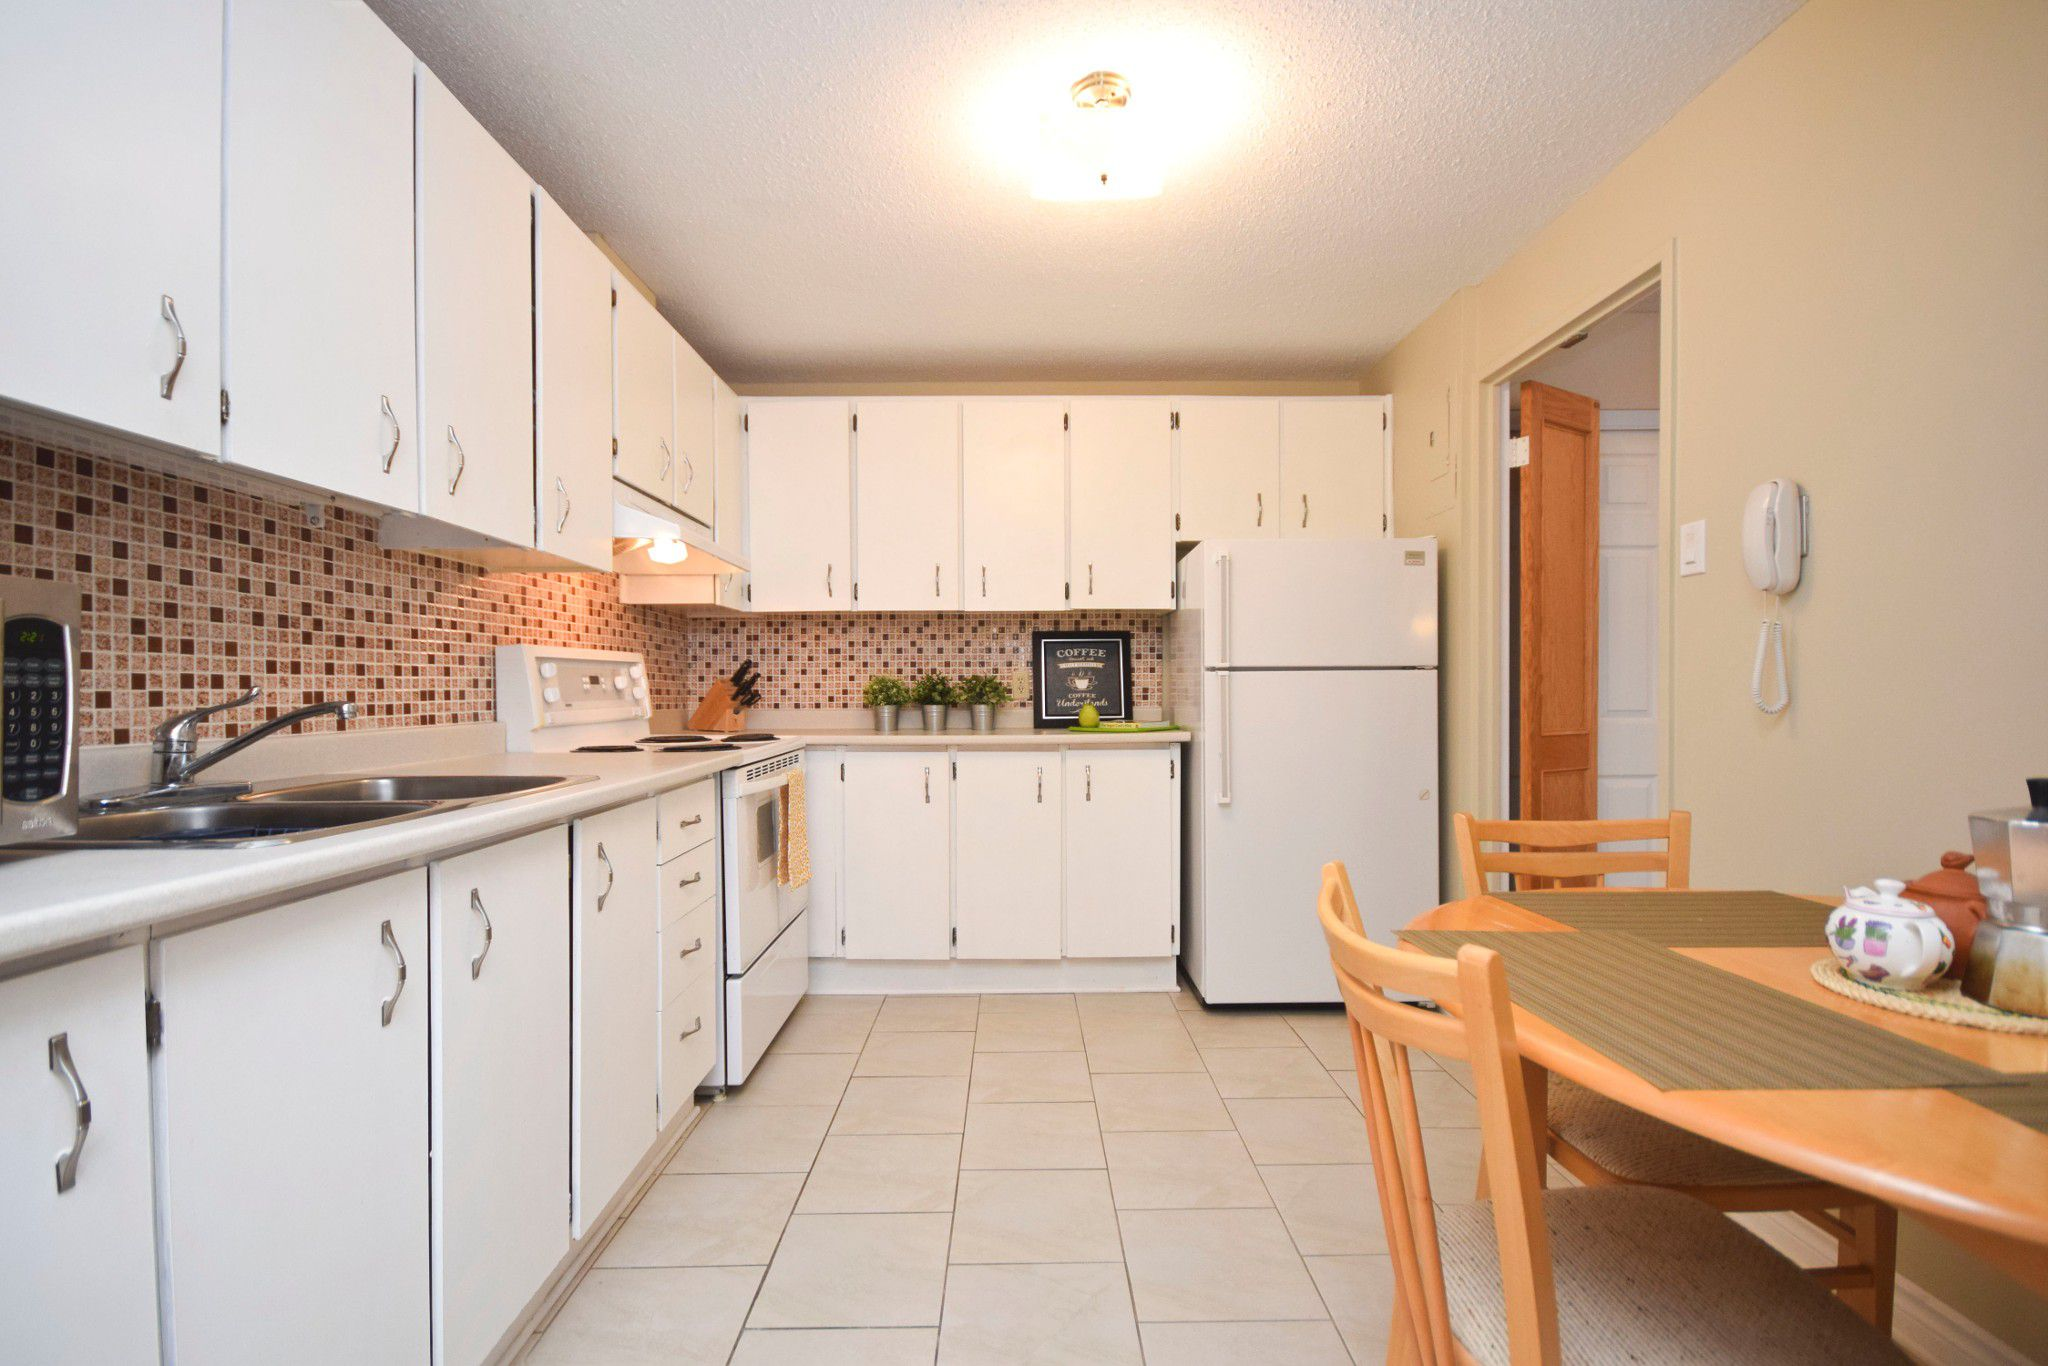 Photo 22: Photos: 515 1465 BASELINE Road in Ottawa: Copeland Park House for sale : MLS®# 1133550